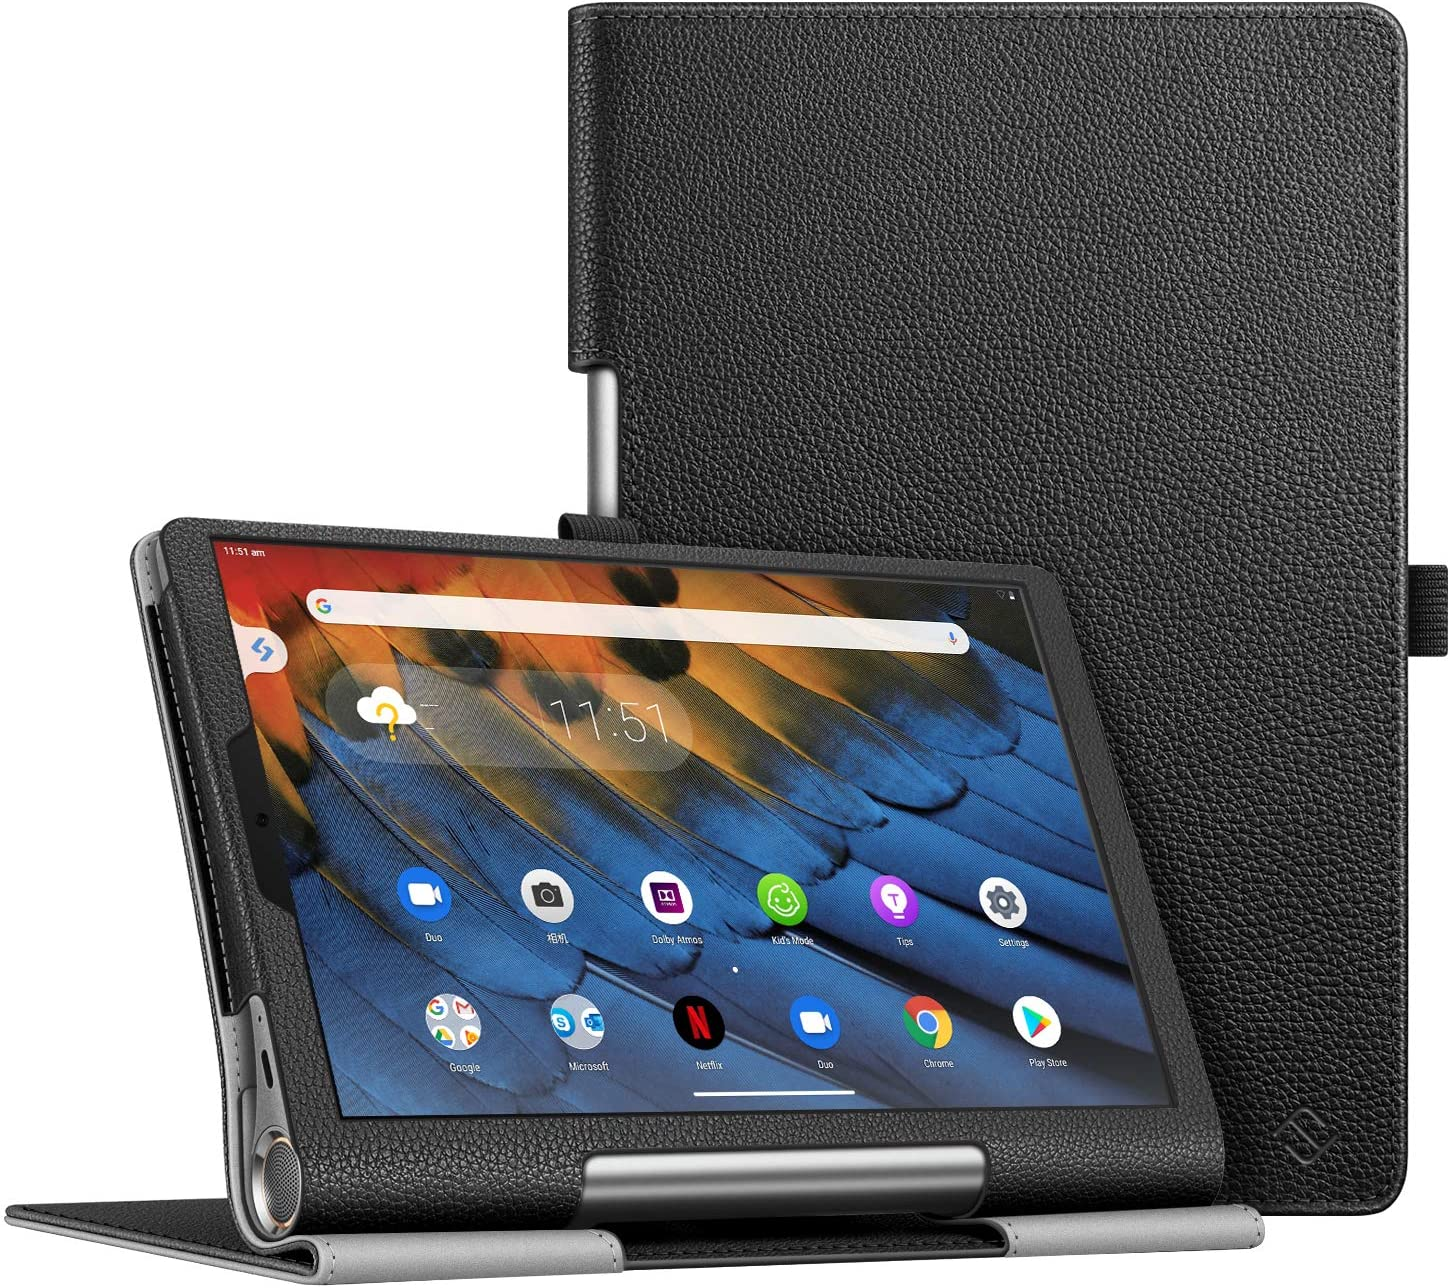 Fintie Case for Lenovo Yoga Smart Tab, Premium Vegan Leather Slim Fit Case Folio Smart Stand Protective Cover with Auto Sleep/Wake Feature for Lenovo Yoga Smart Tab 10.1 (YT-X705F) Tablet, Black